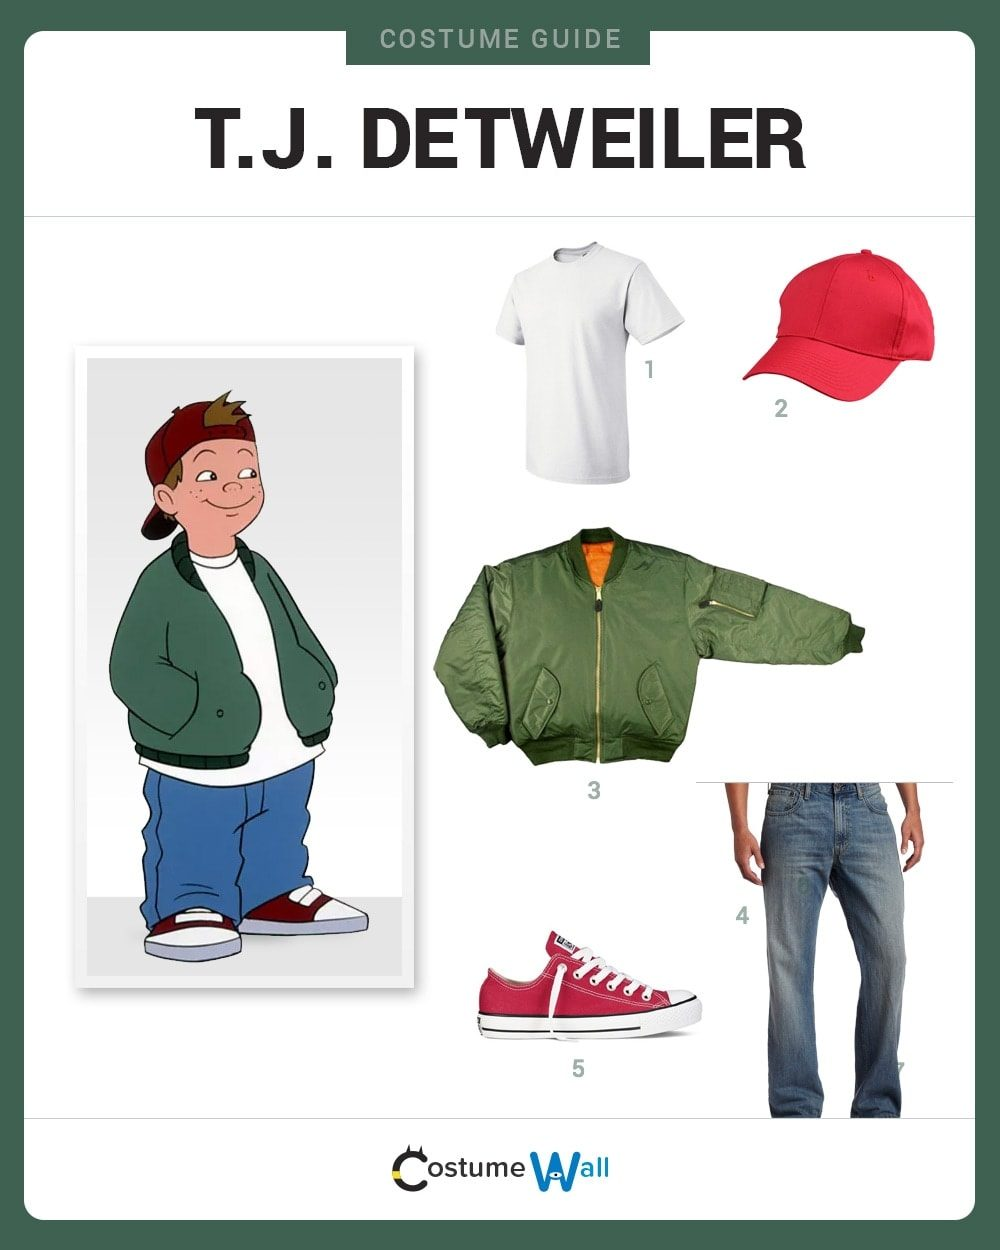 dress like t.j. detweiler costume | halloween and cosplay guides